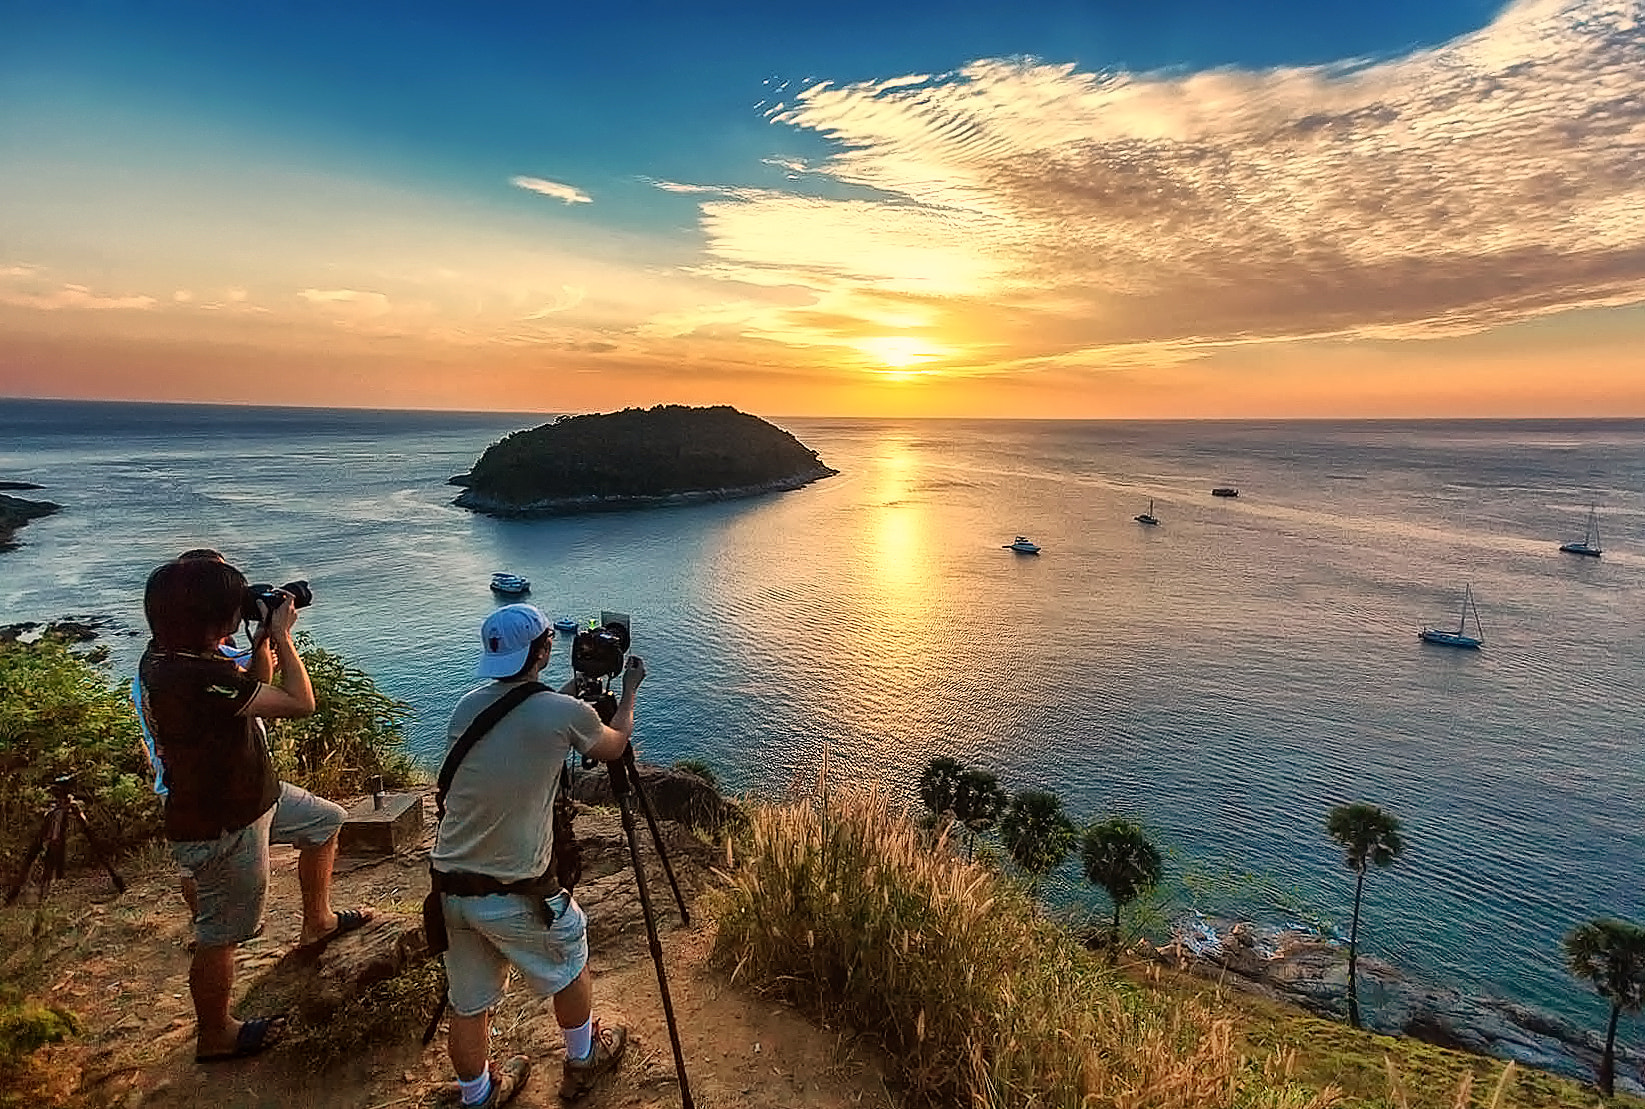 Photograph Here in Phuket Thailand. by Wazabi Bomb  on 500px